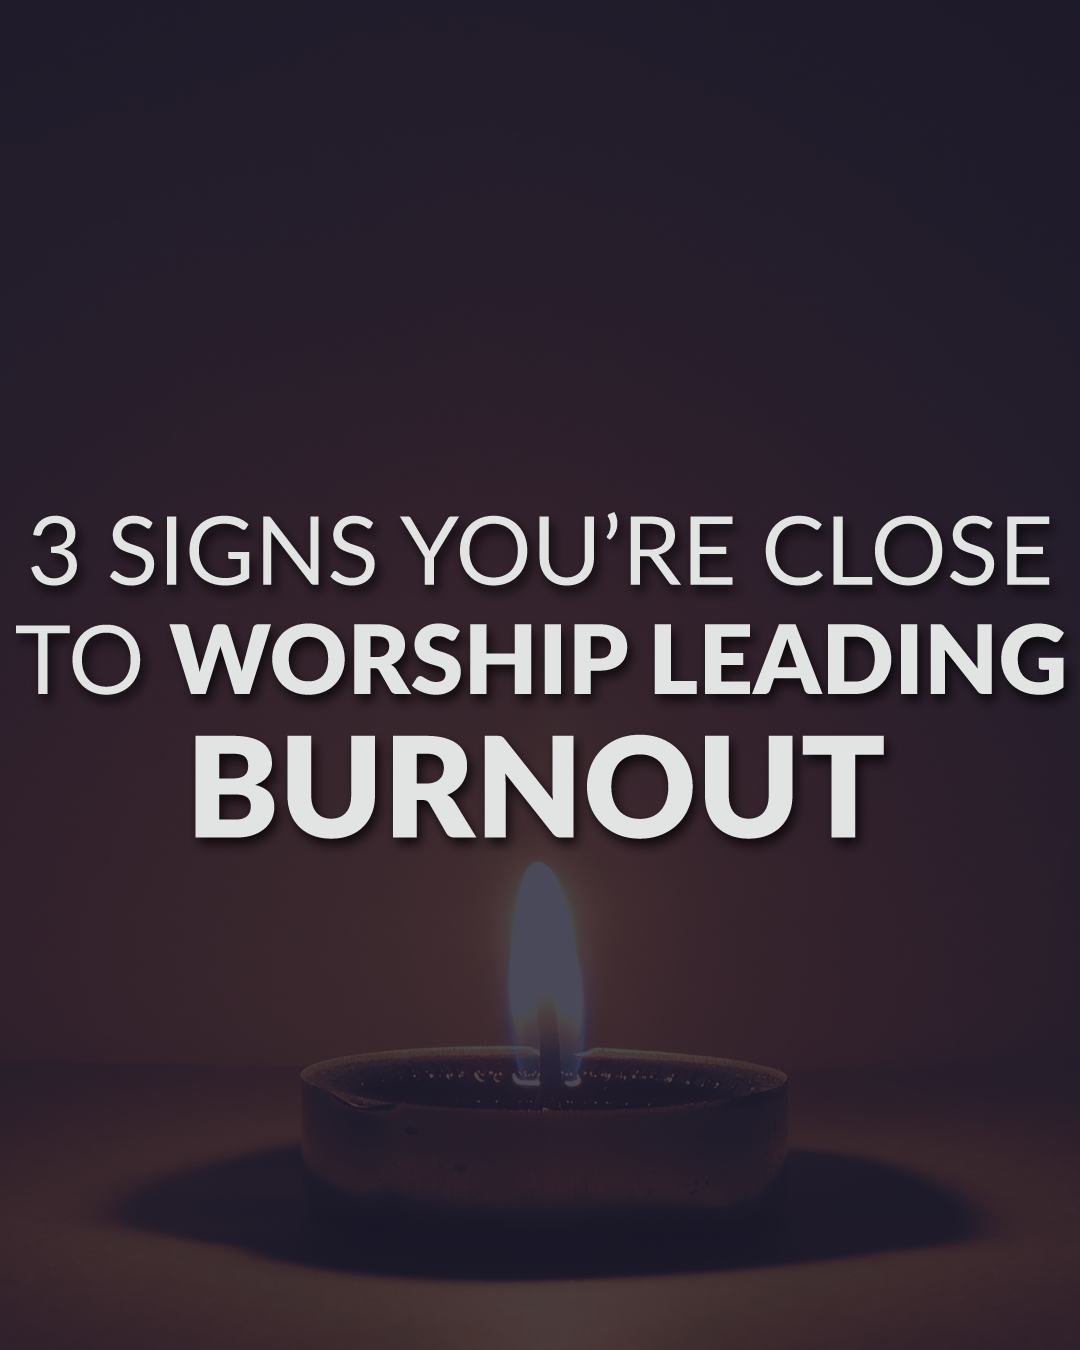 3 Signs You're Close To Worship Leading Burnout